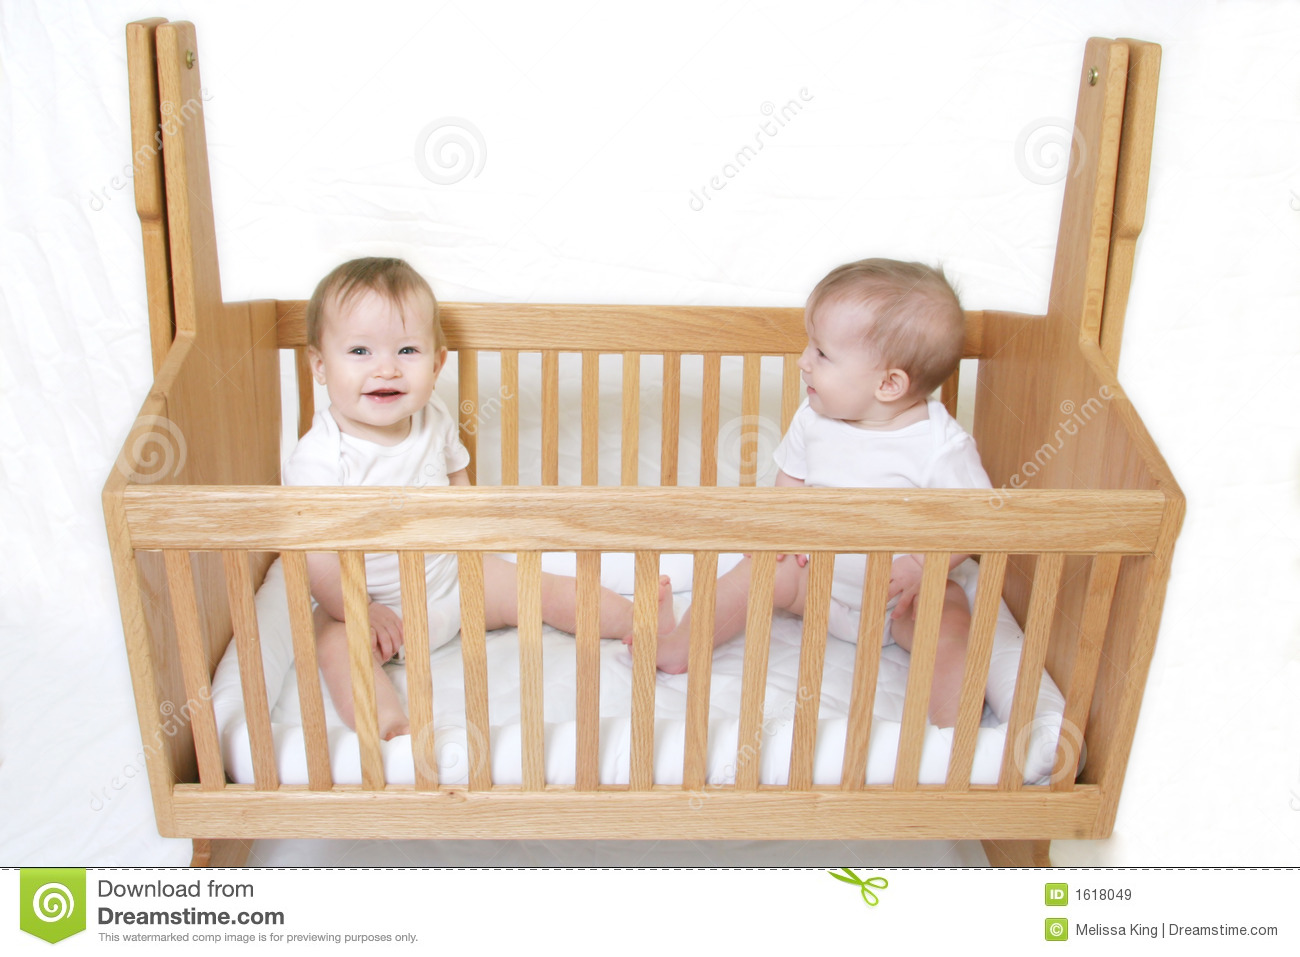 Brookfield fixed gate crib for sale - Baby Bed For Twins Baby Twins In Crib